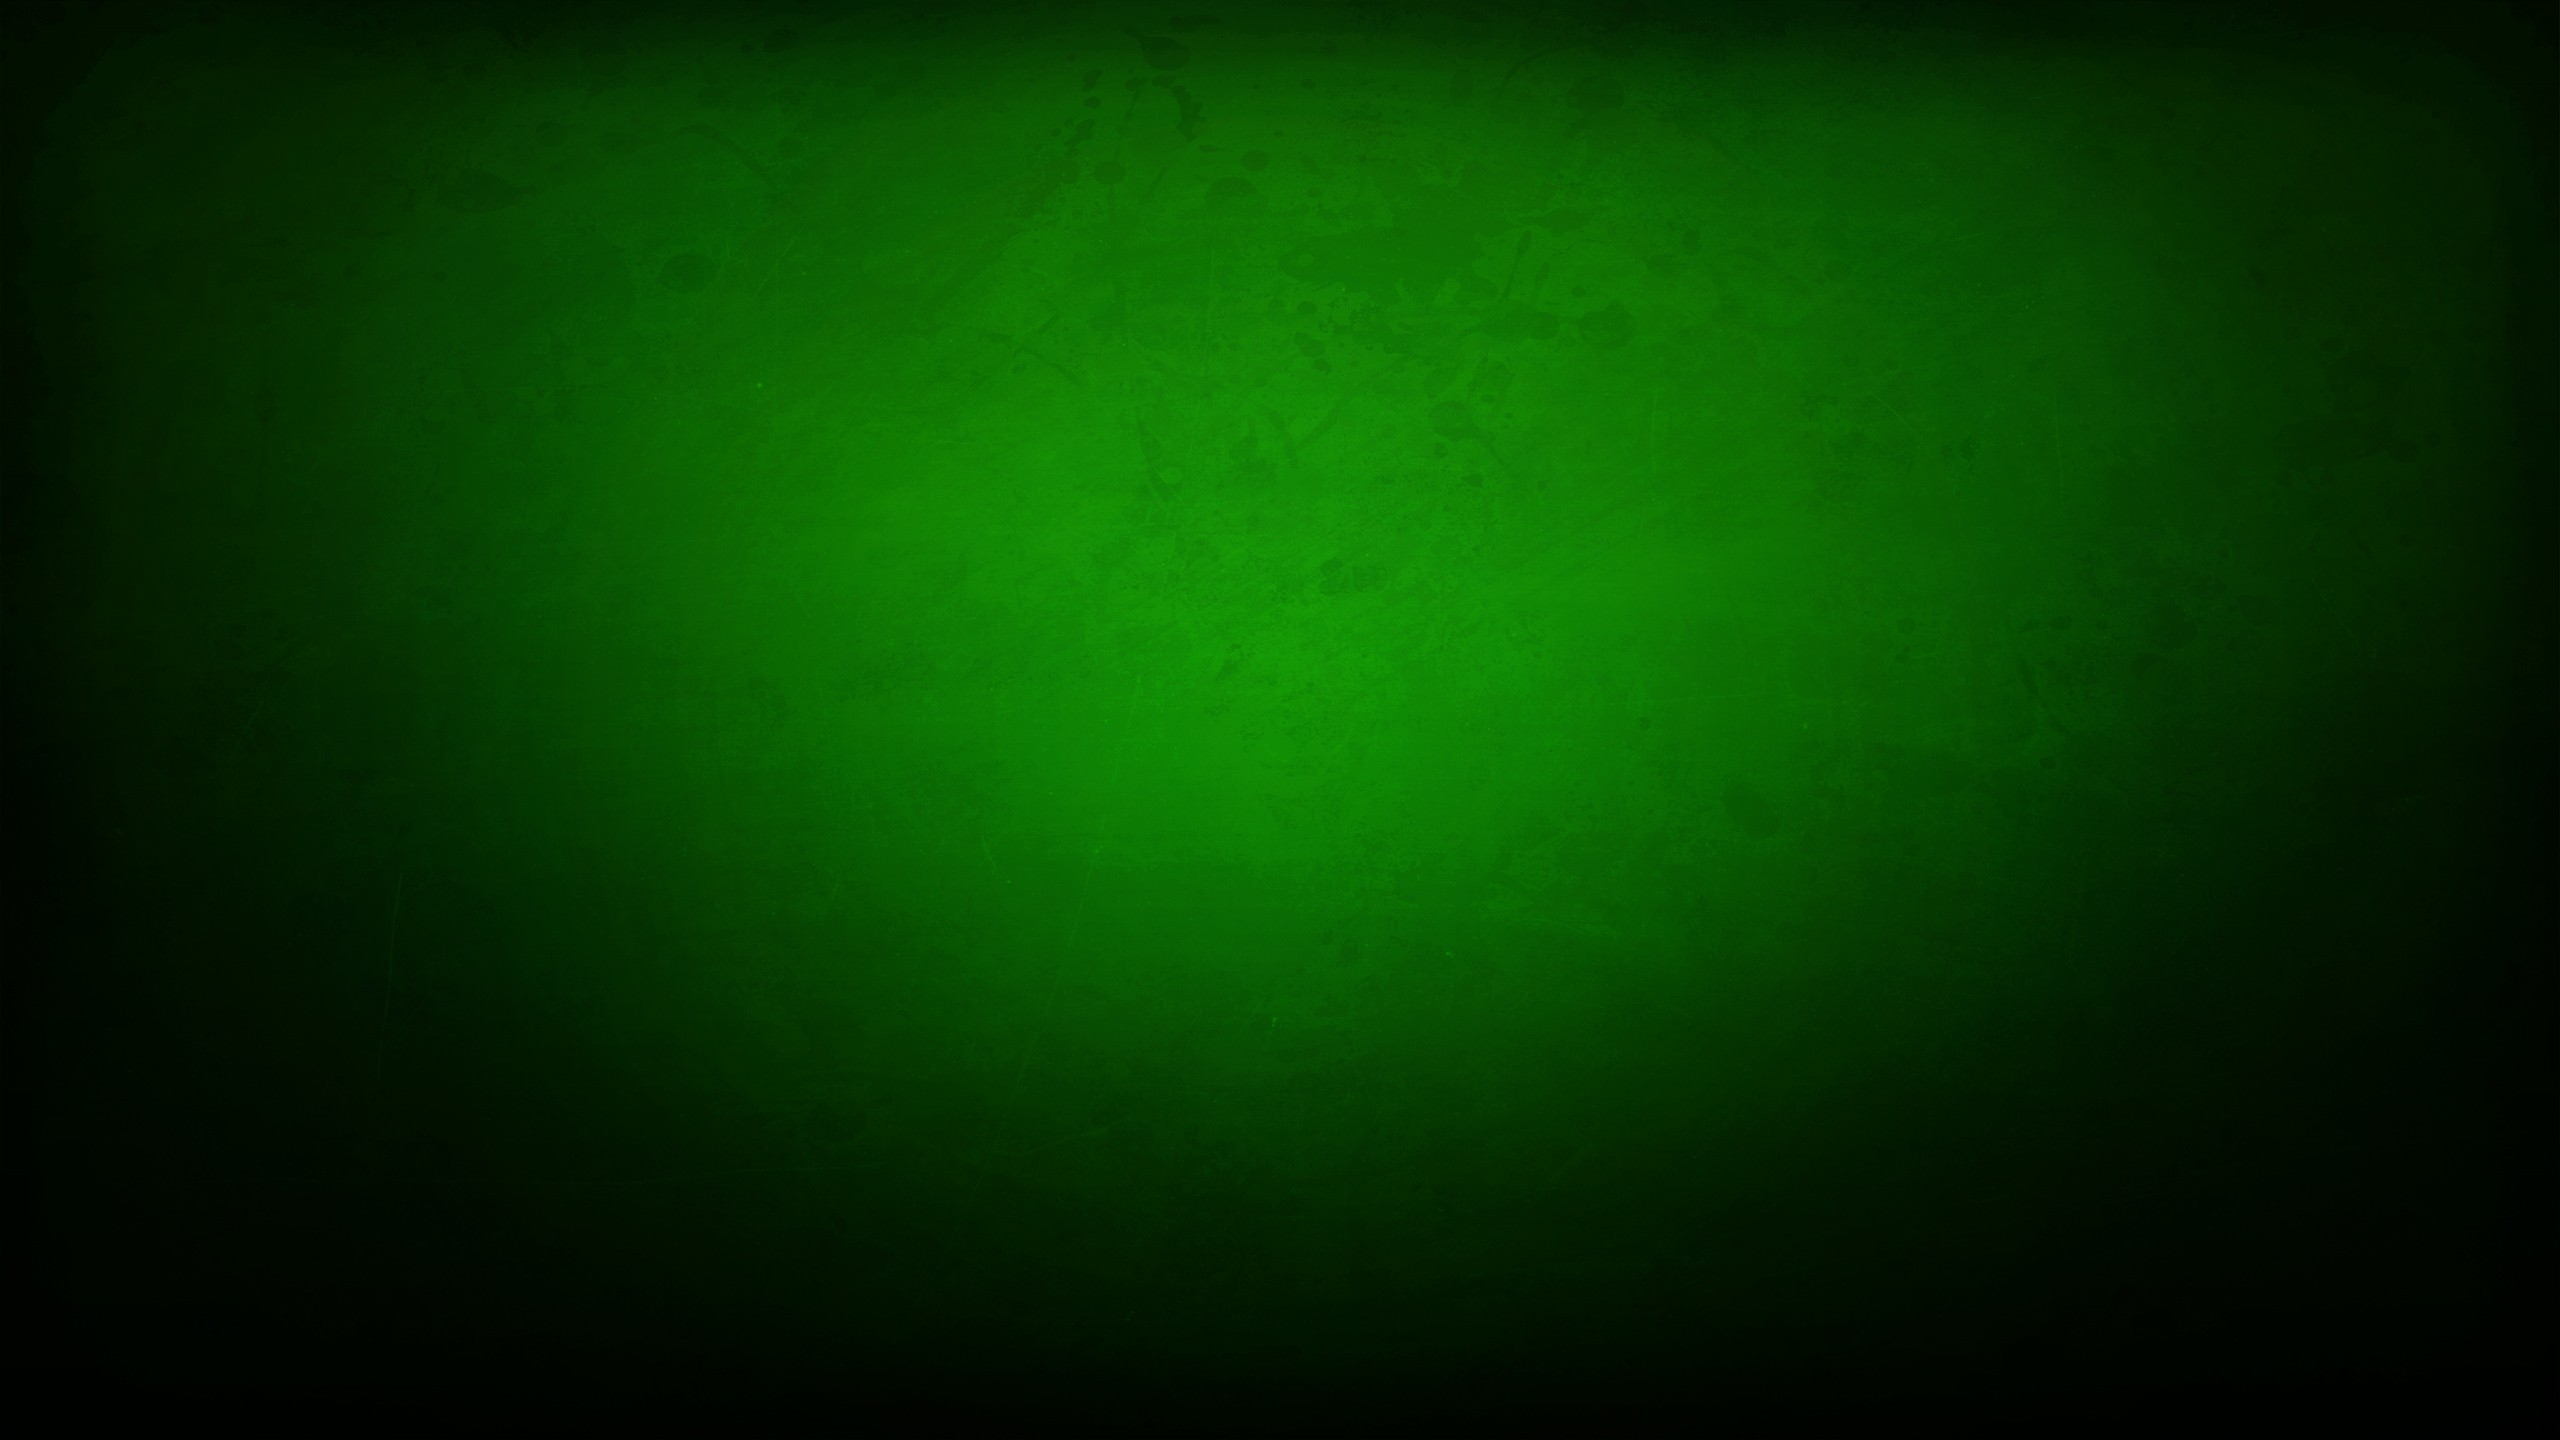 2560x1440 Grunge Green desktop PC and Mac wallpaper 2560x1440